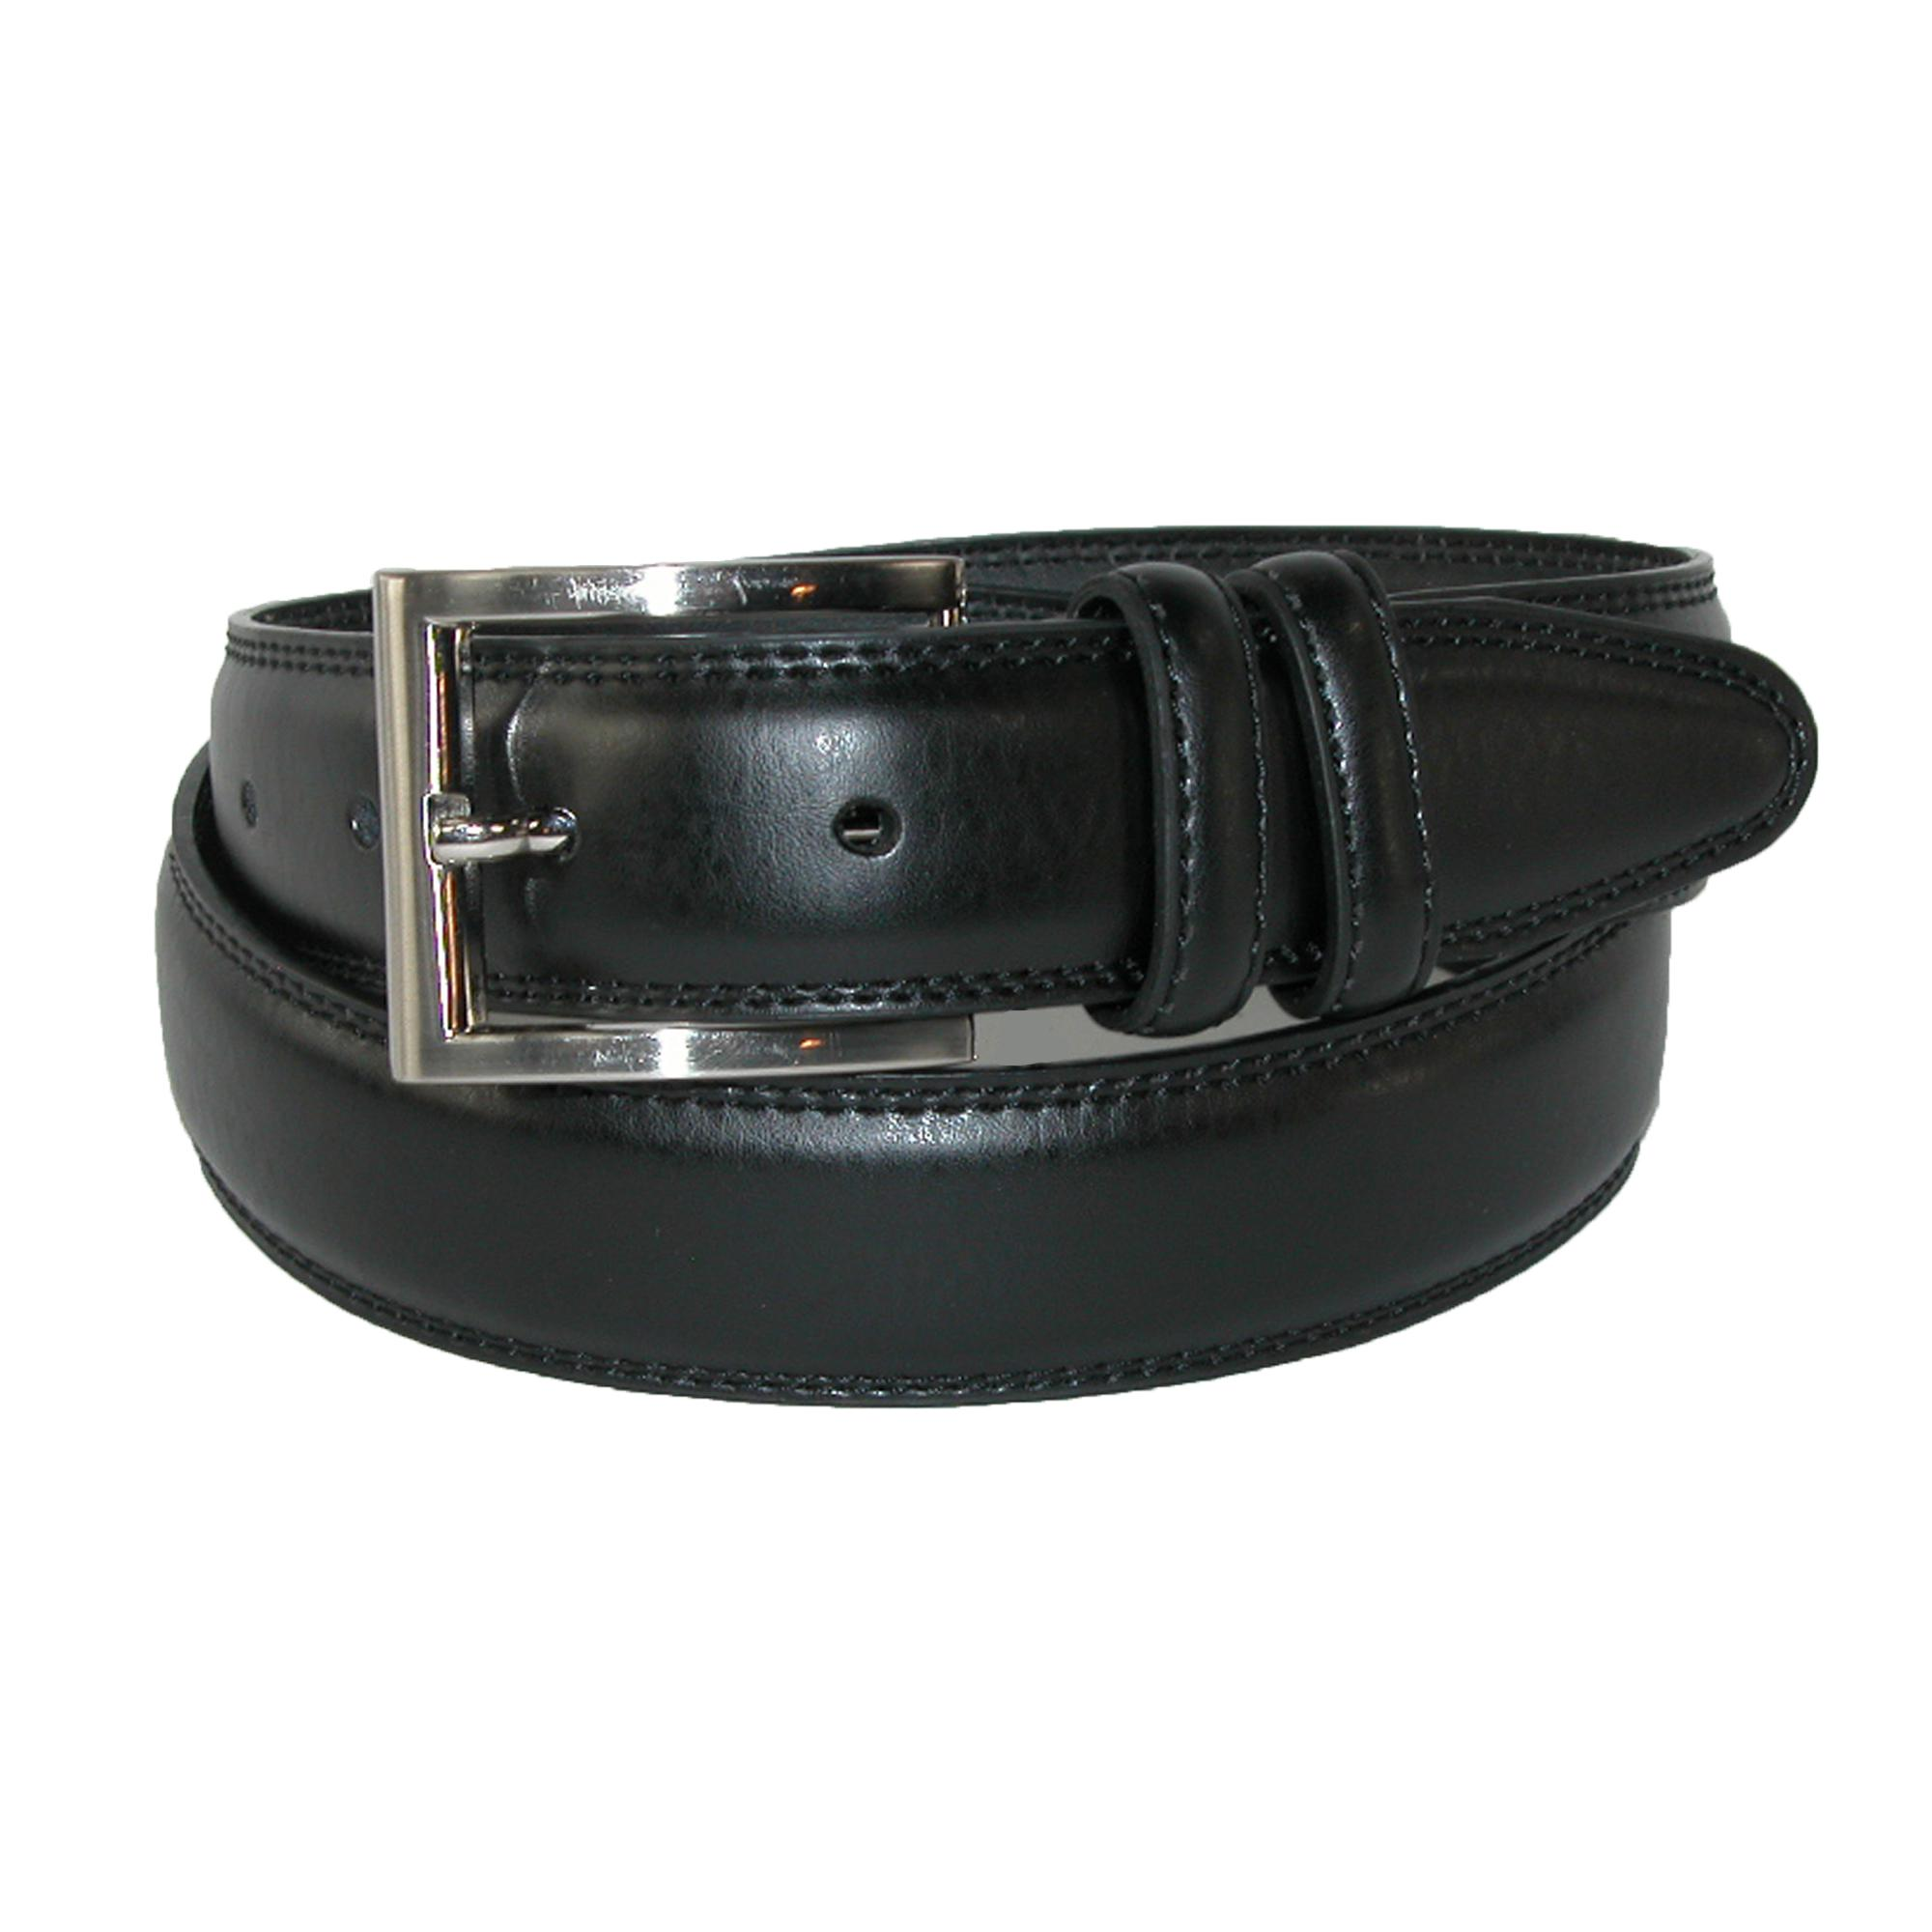 Aquarius_Mens_Leather_Padded_Belt_with_Satin_Buckle_and_Double_Keeper